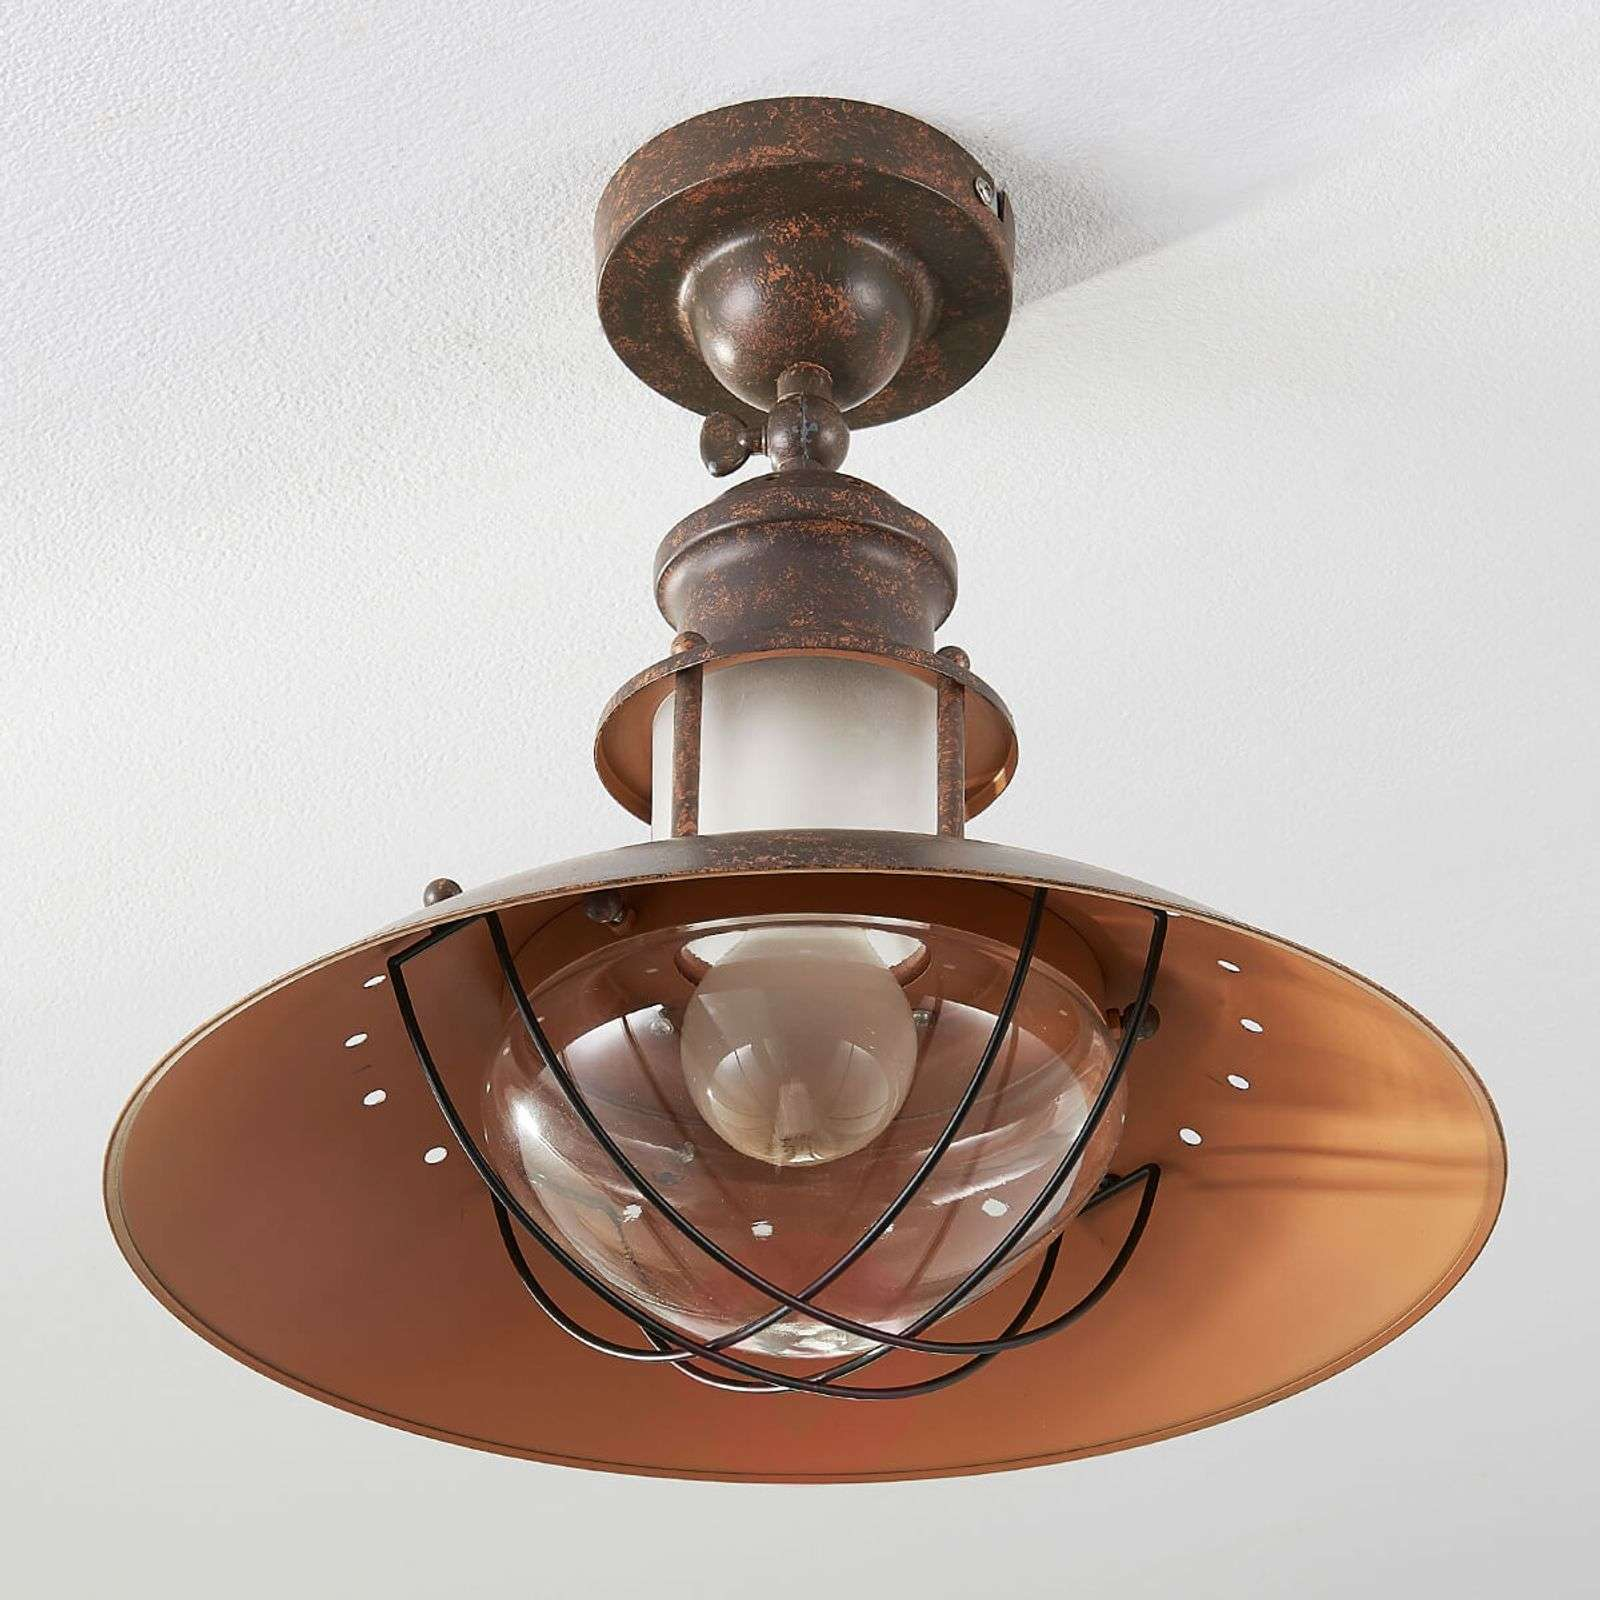 Ceiling Light Offers: Rustic Ceiling Light Louisanne